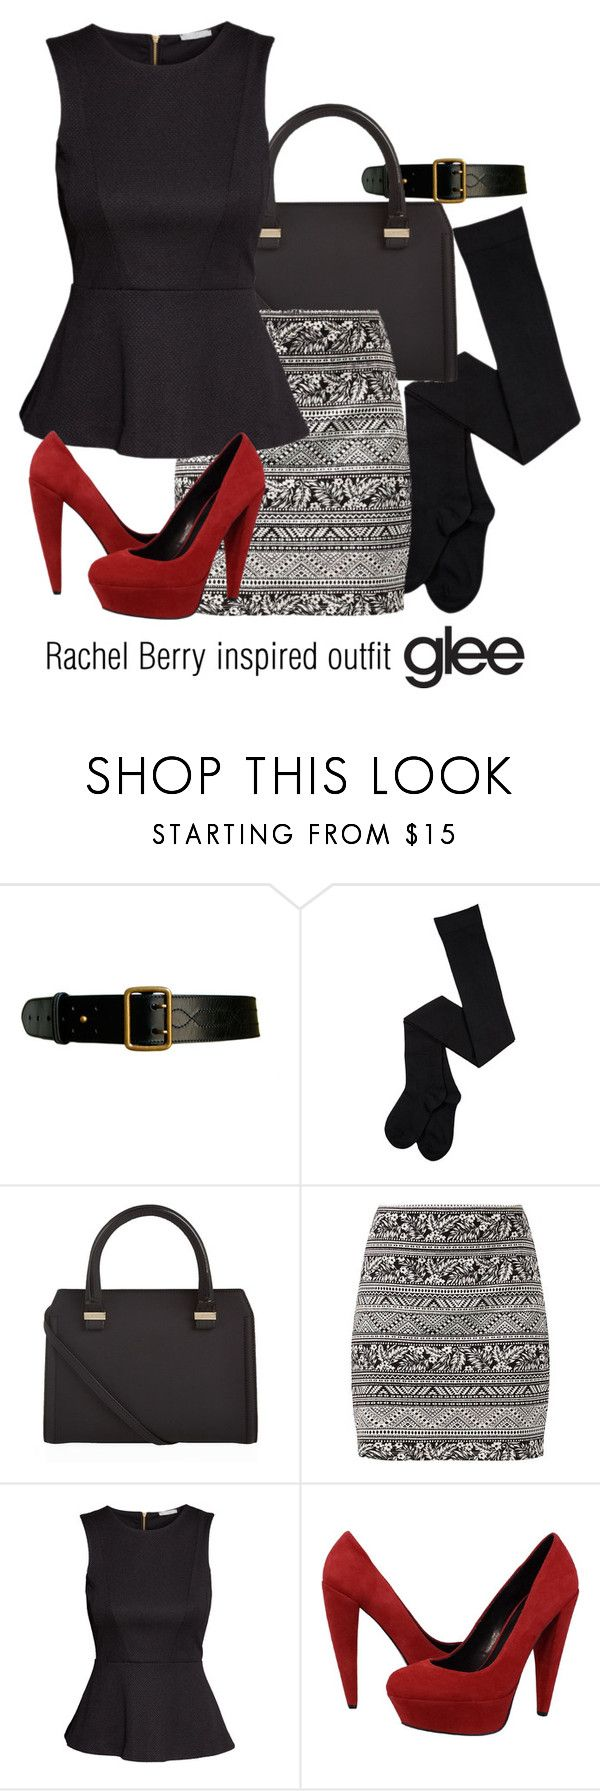 """""""Rachel Berry inspired outfit/glee"""" by tvdsarahmichele ❤ liked on Polyvore featuring Alaïa, Victoria Beckham, H&M and Dolce Vita"""